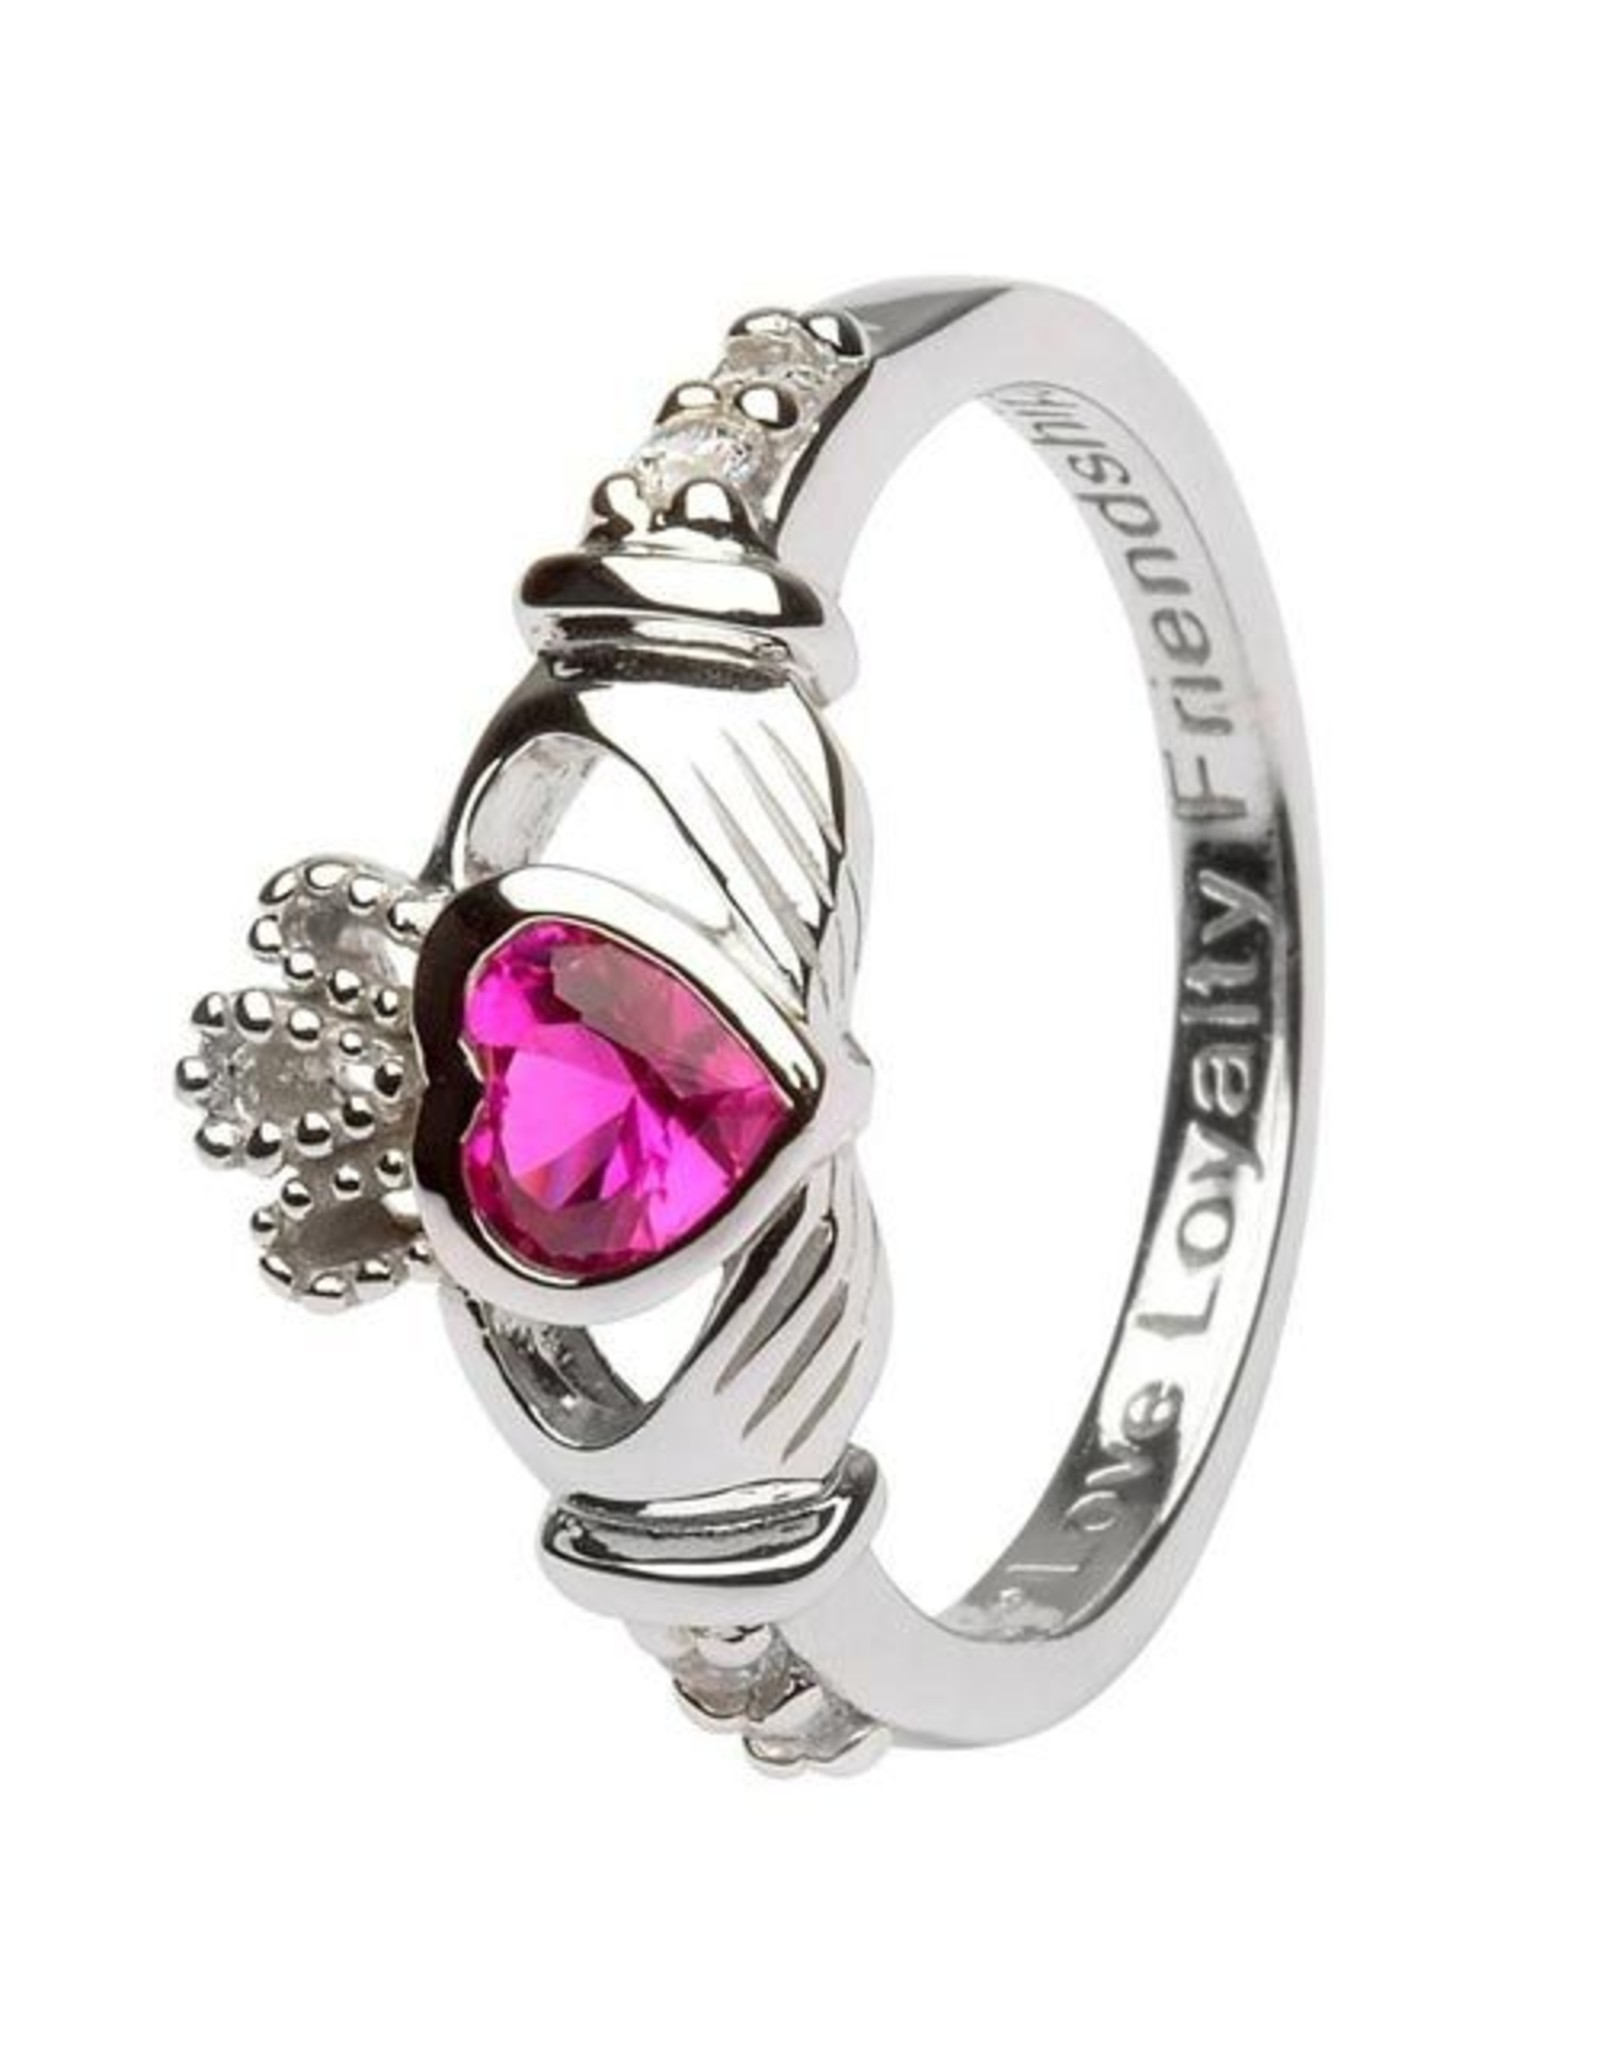 Shanore July Claddagh Birthstone Ring